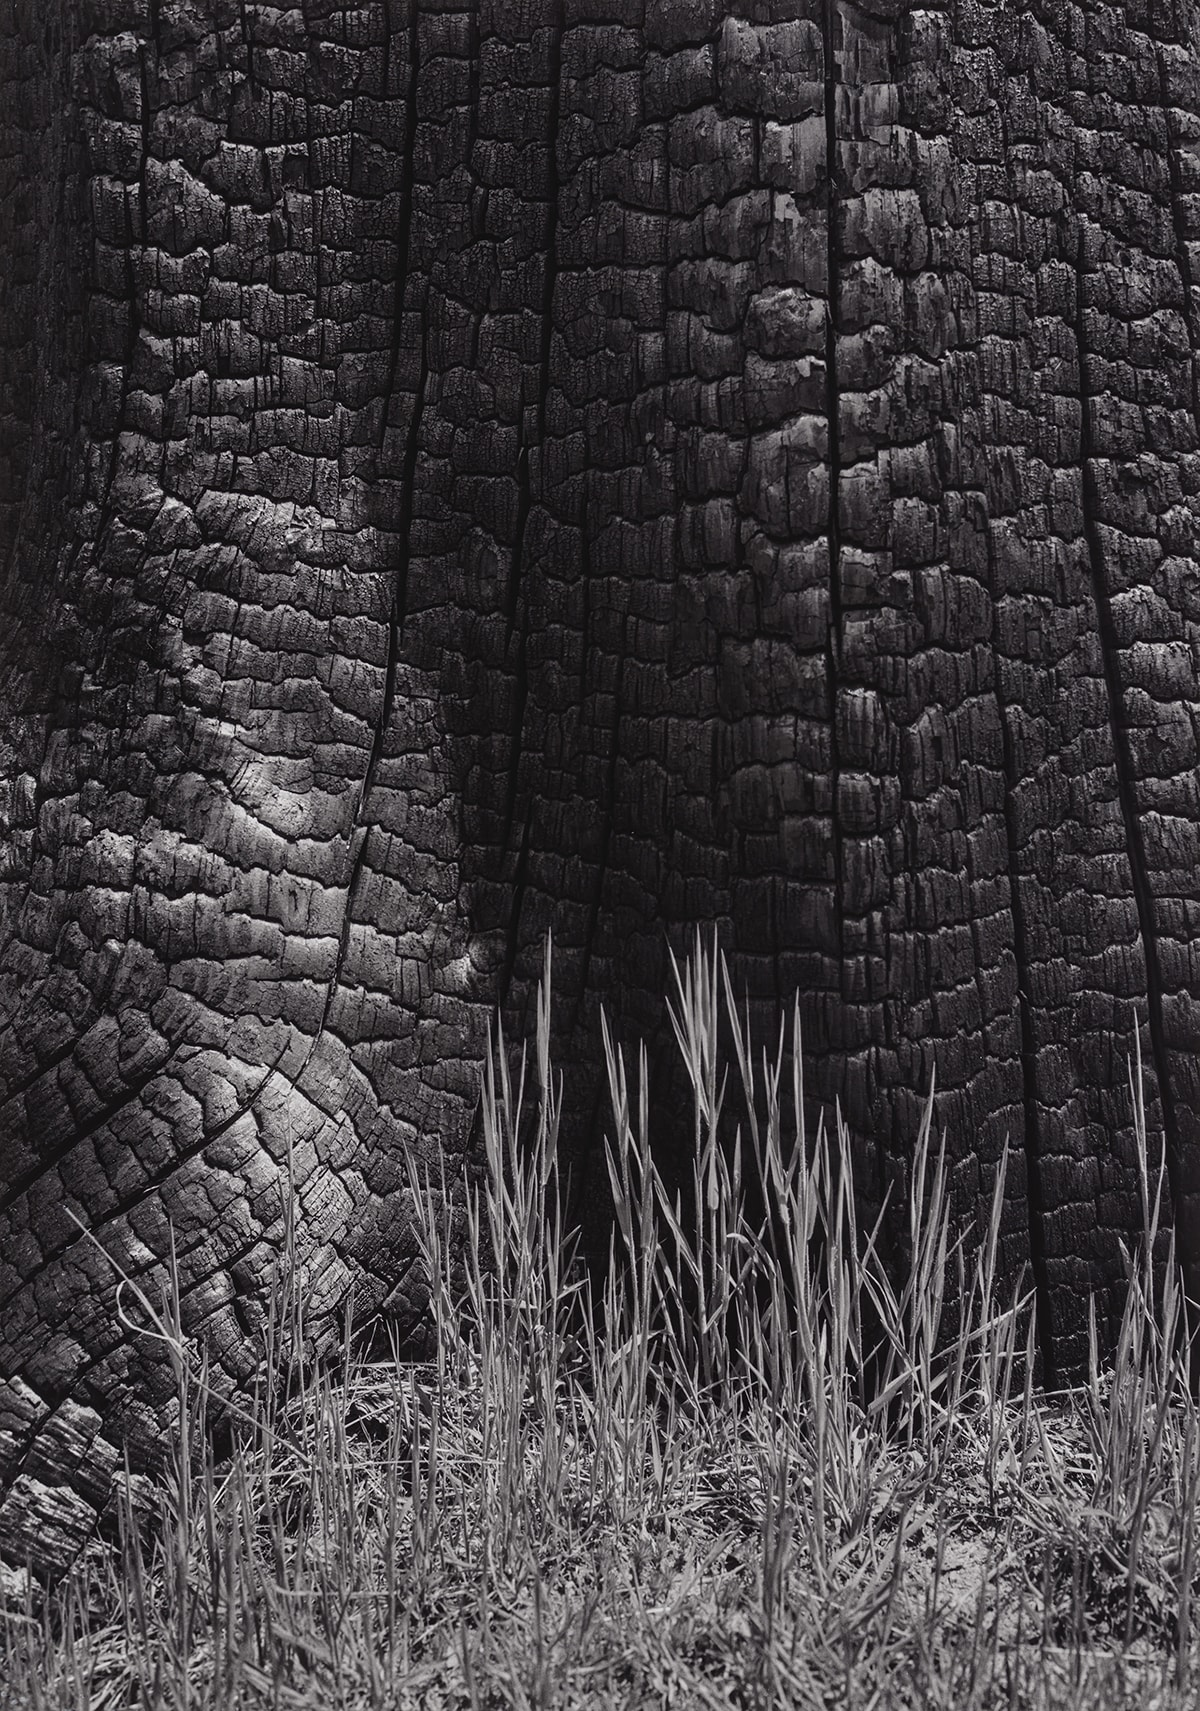 Image description: Grass and Burned Stump, Sierra Nevada, California, Ansel Adams, gelatin silver print. A black and white, vertical photograph of a close-up view of a burned tree stump with grass growing at its base. Most of the photo features the highly textured burned tree bark. Deep cracks run vertically down the trunk and off to a thick root that extends to the left. The bark breaks down into uneven, corrugated segments between the vertical cracks, giving the trunk a wrinkled appearance. Sparse blades of grass grow at the base about a third of the way up the photo and are highlighted against the dark shadow on the trunk.